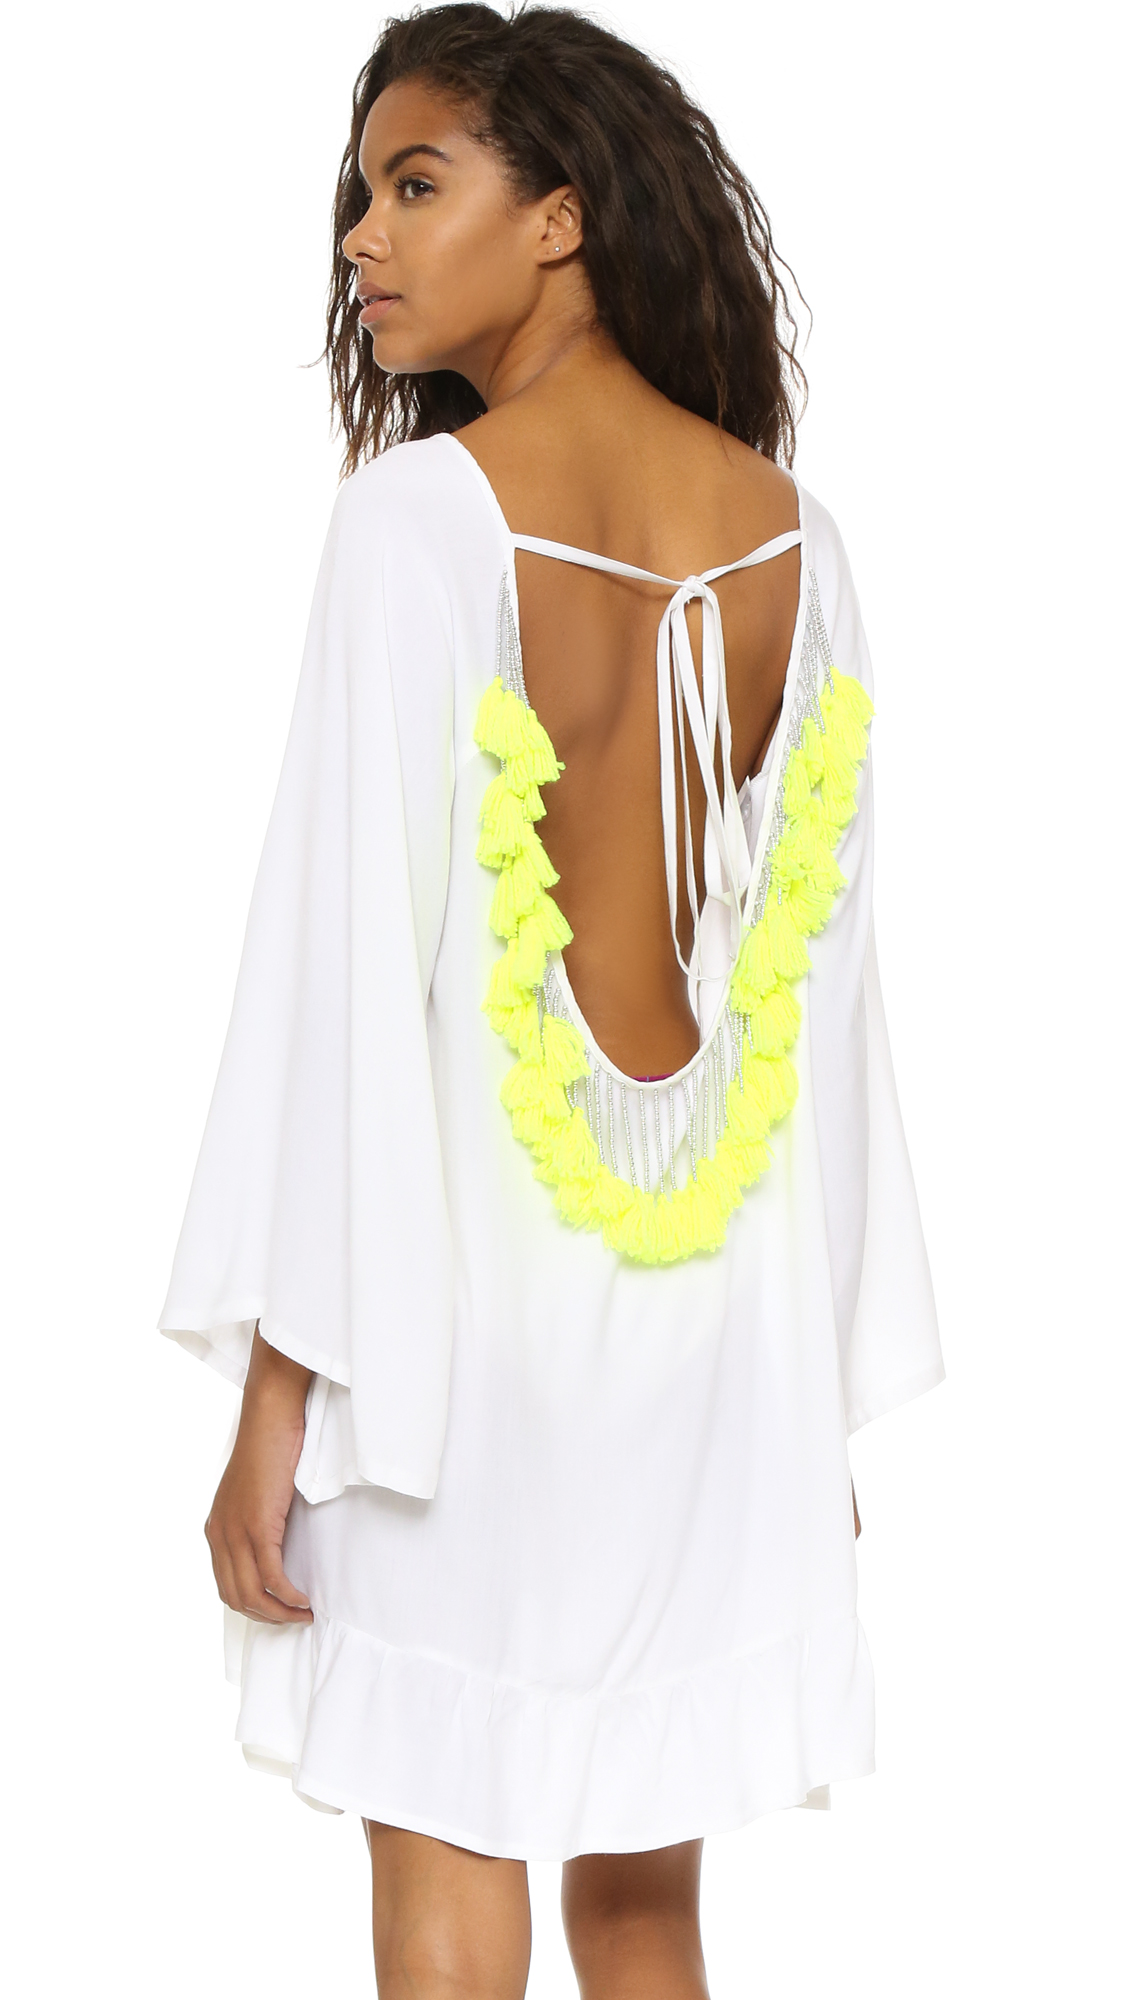 Beads and yarn form tassels on this SUNDRESS cover-up. Tie closure in back. Kimono sleeves. Ruffled hem. Fabric: Soft weave. 100% viscose. Hand wash. Imported, India. Measurements Length: 32in / 81cm, from shoulder Measurements from size S